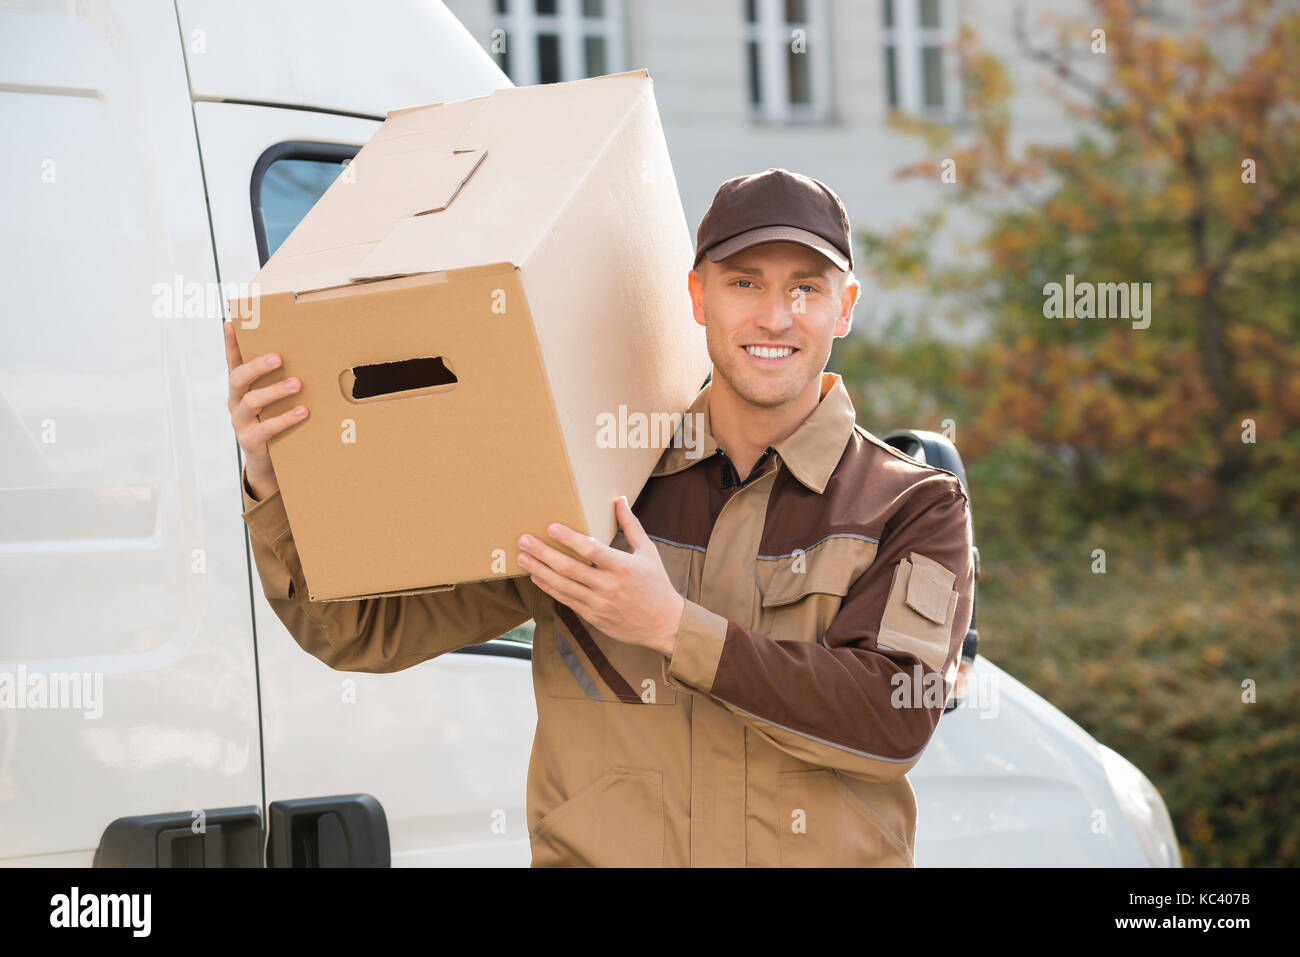 Portrait of young delivery man carrying cardboard box on shoulder with truck in background - Stock Image